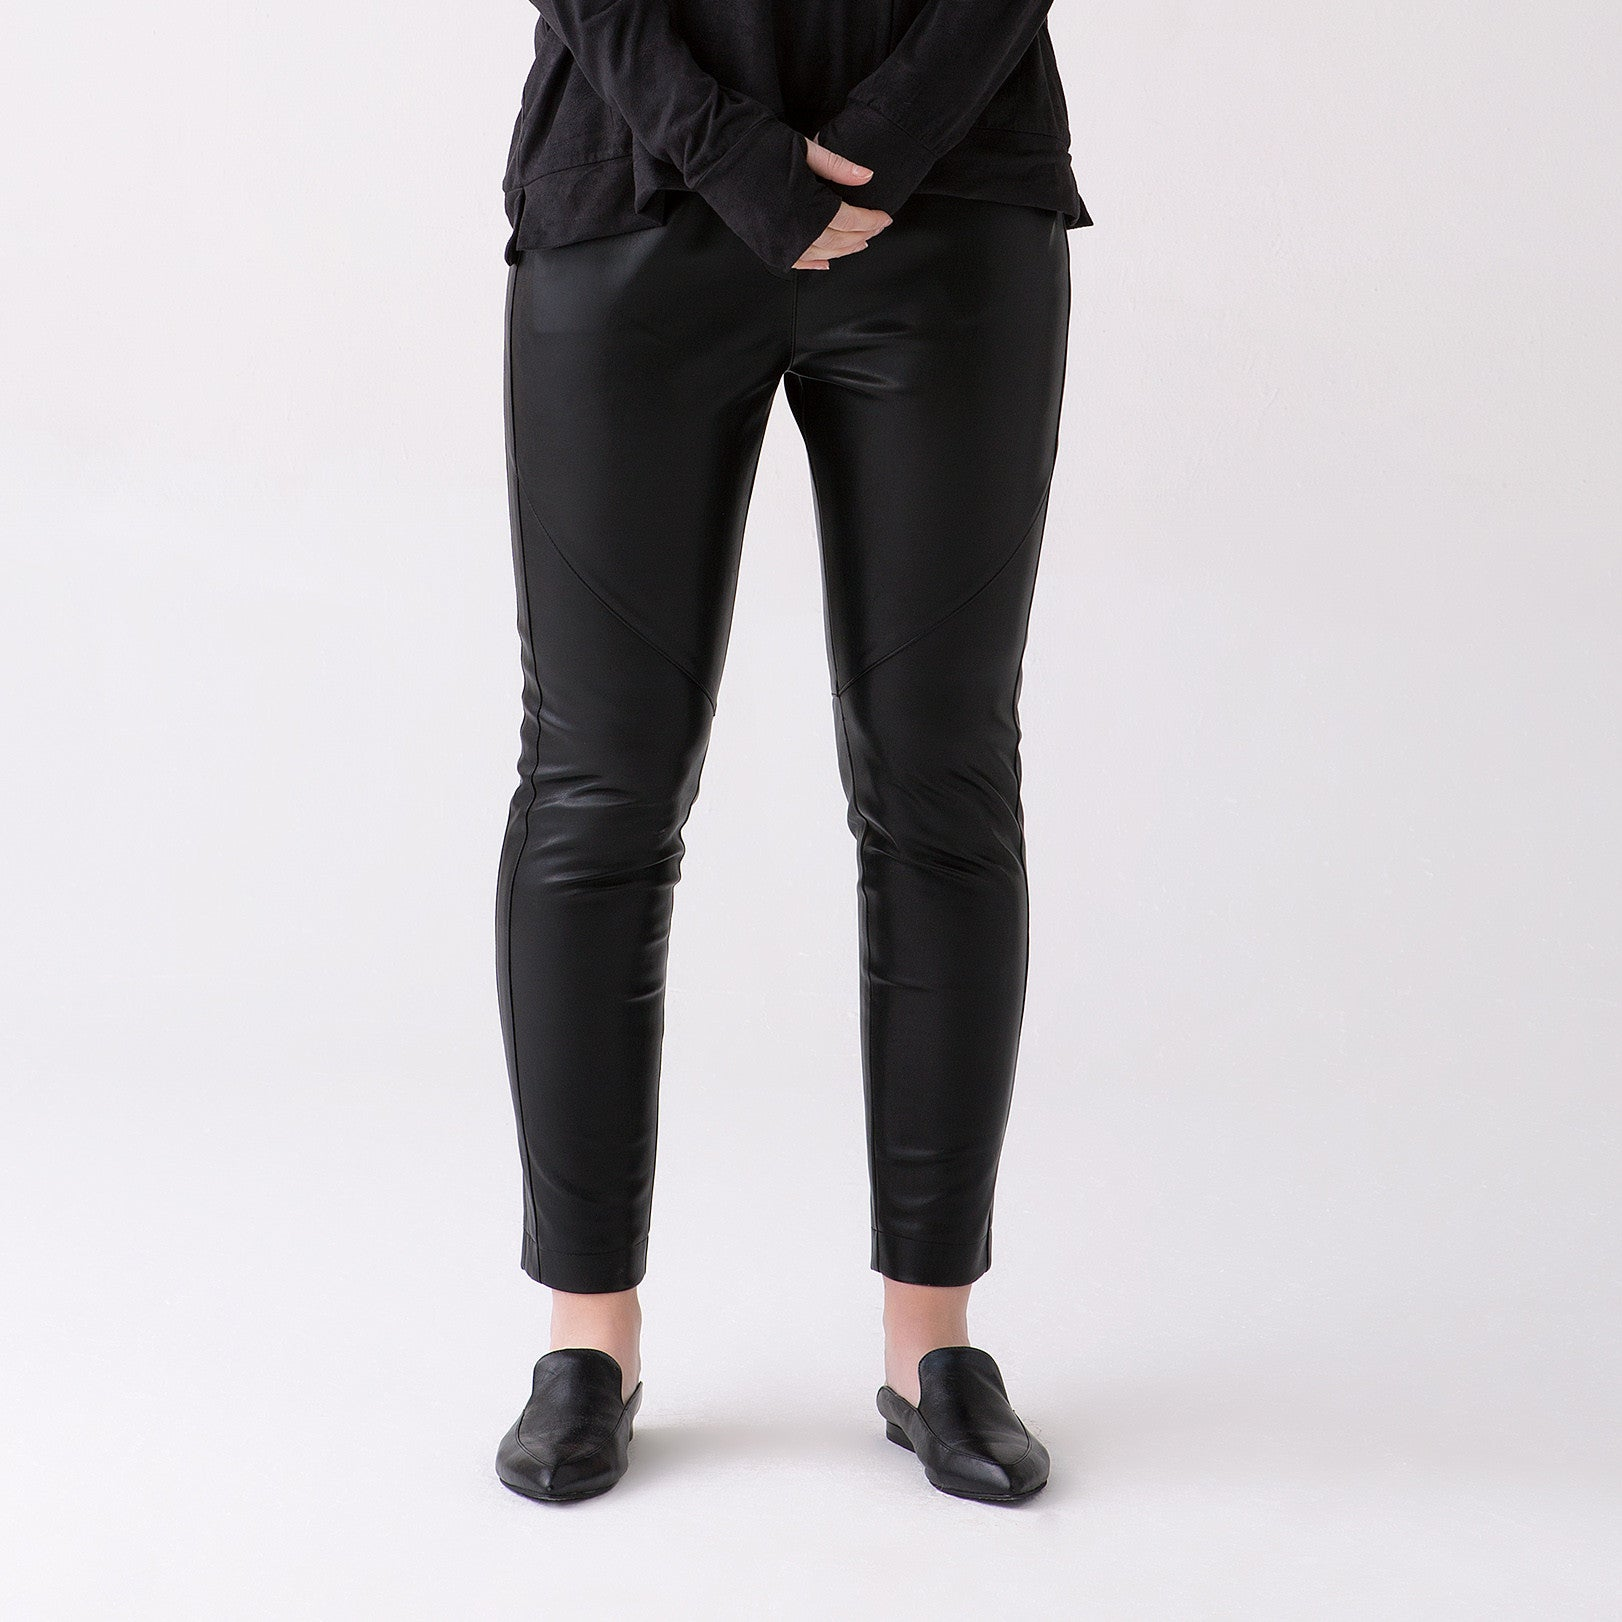 Plus Size Vegan Leather Skinny Pants